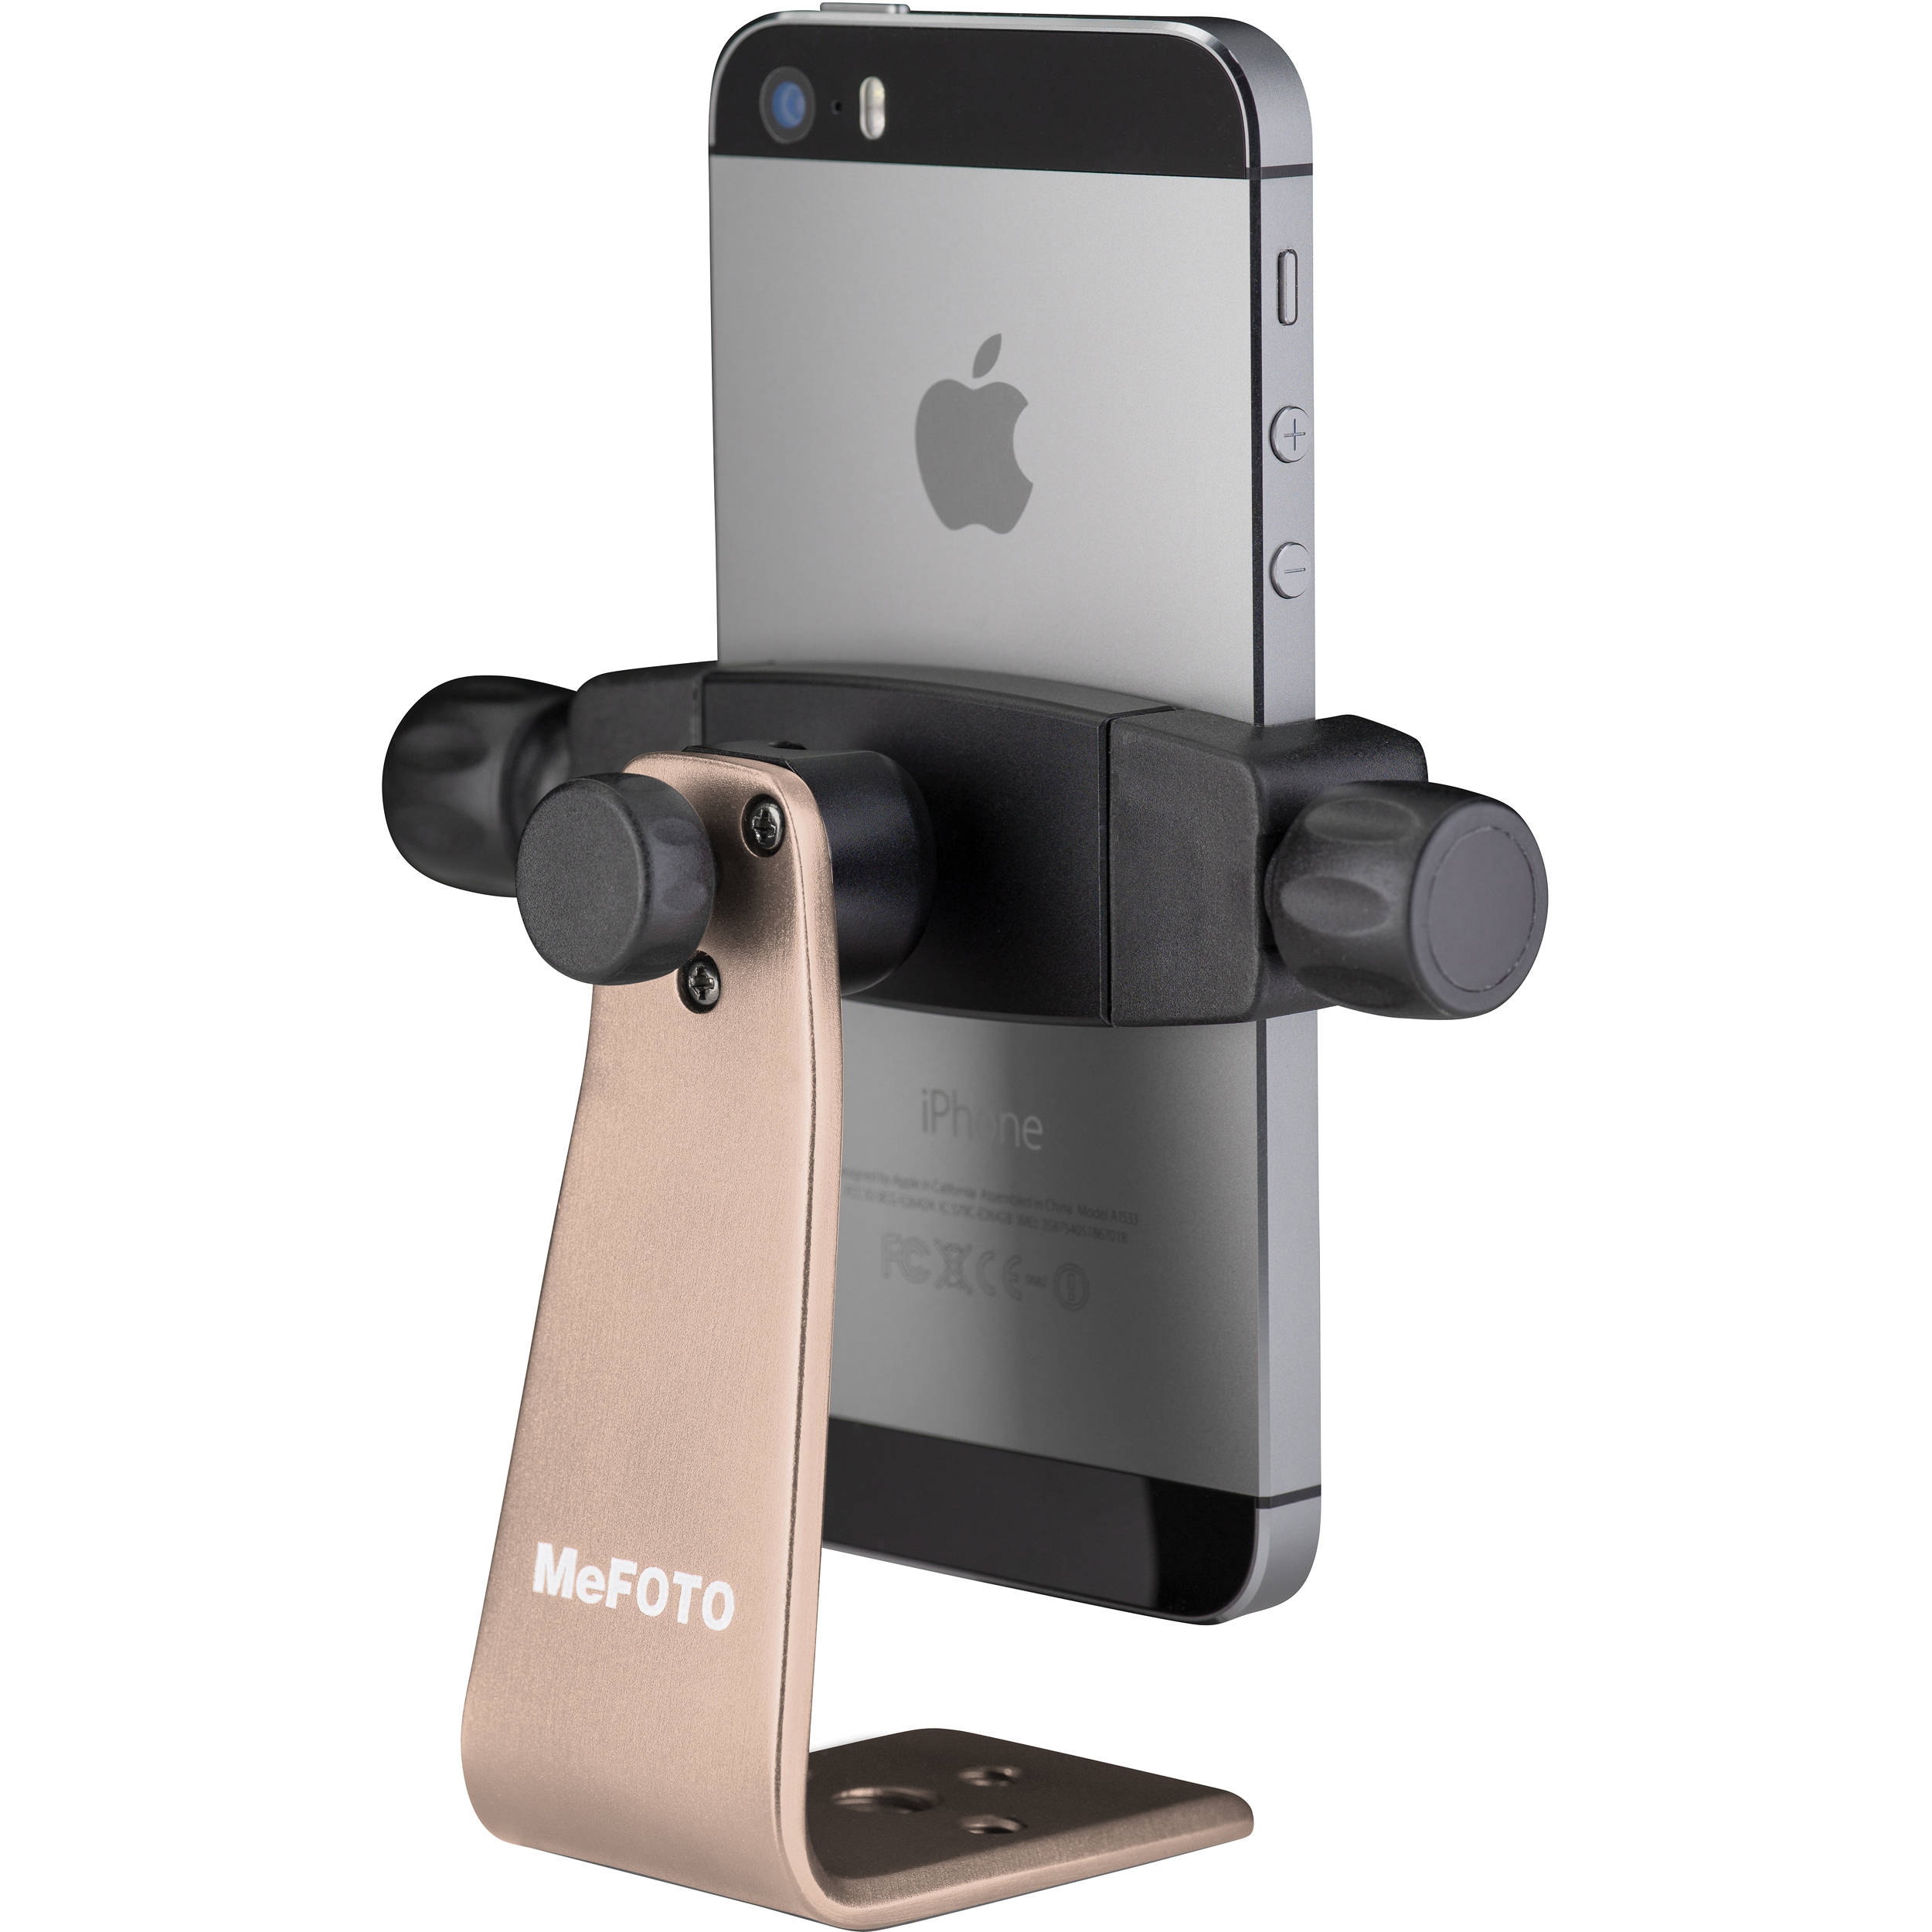 iphone tripod adapter mefoto sidekick360 smartphone tripod adapter gold 7036